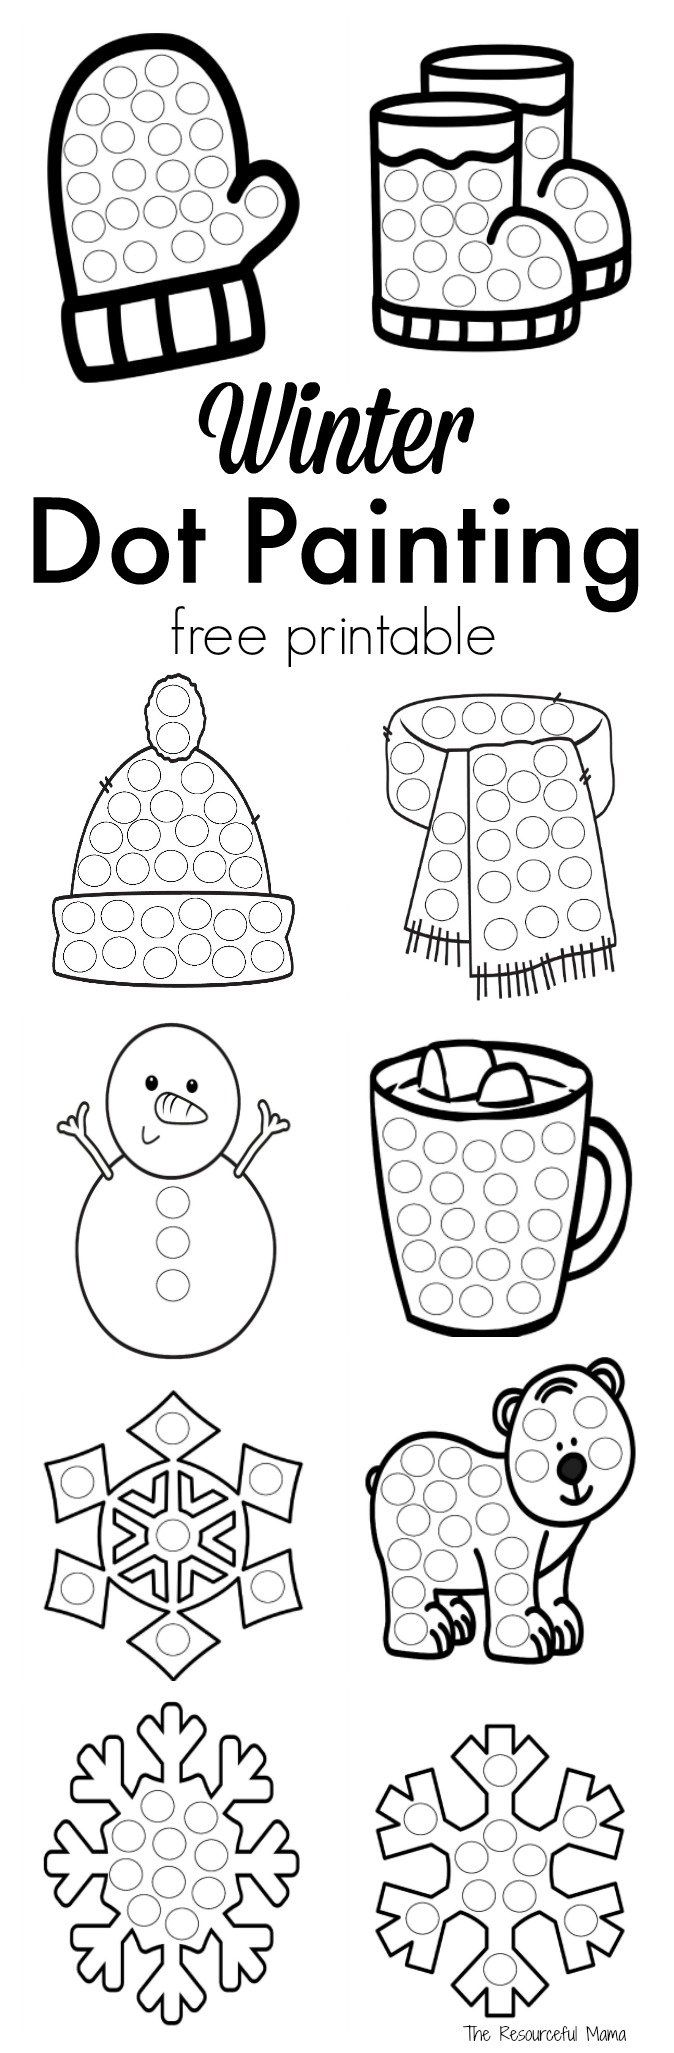 Worksheet Free Printables For Kids best 25 kid printables ideas on pinterest free alphabet winter dot painting printable